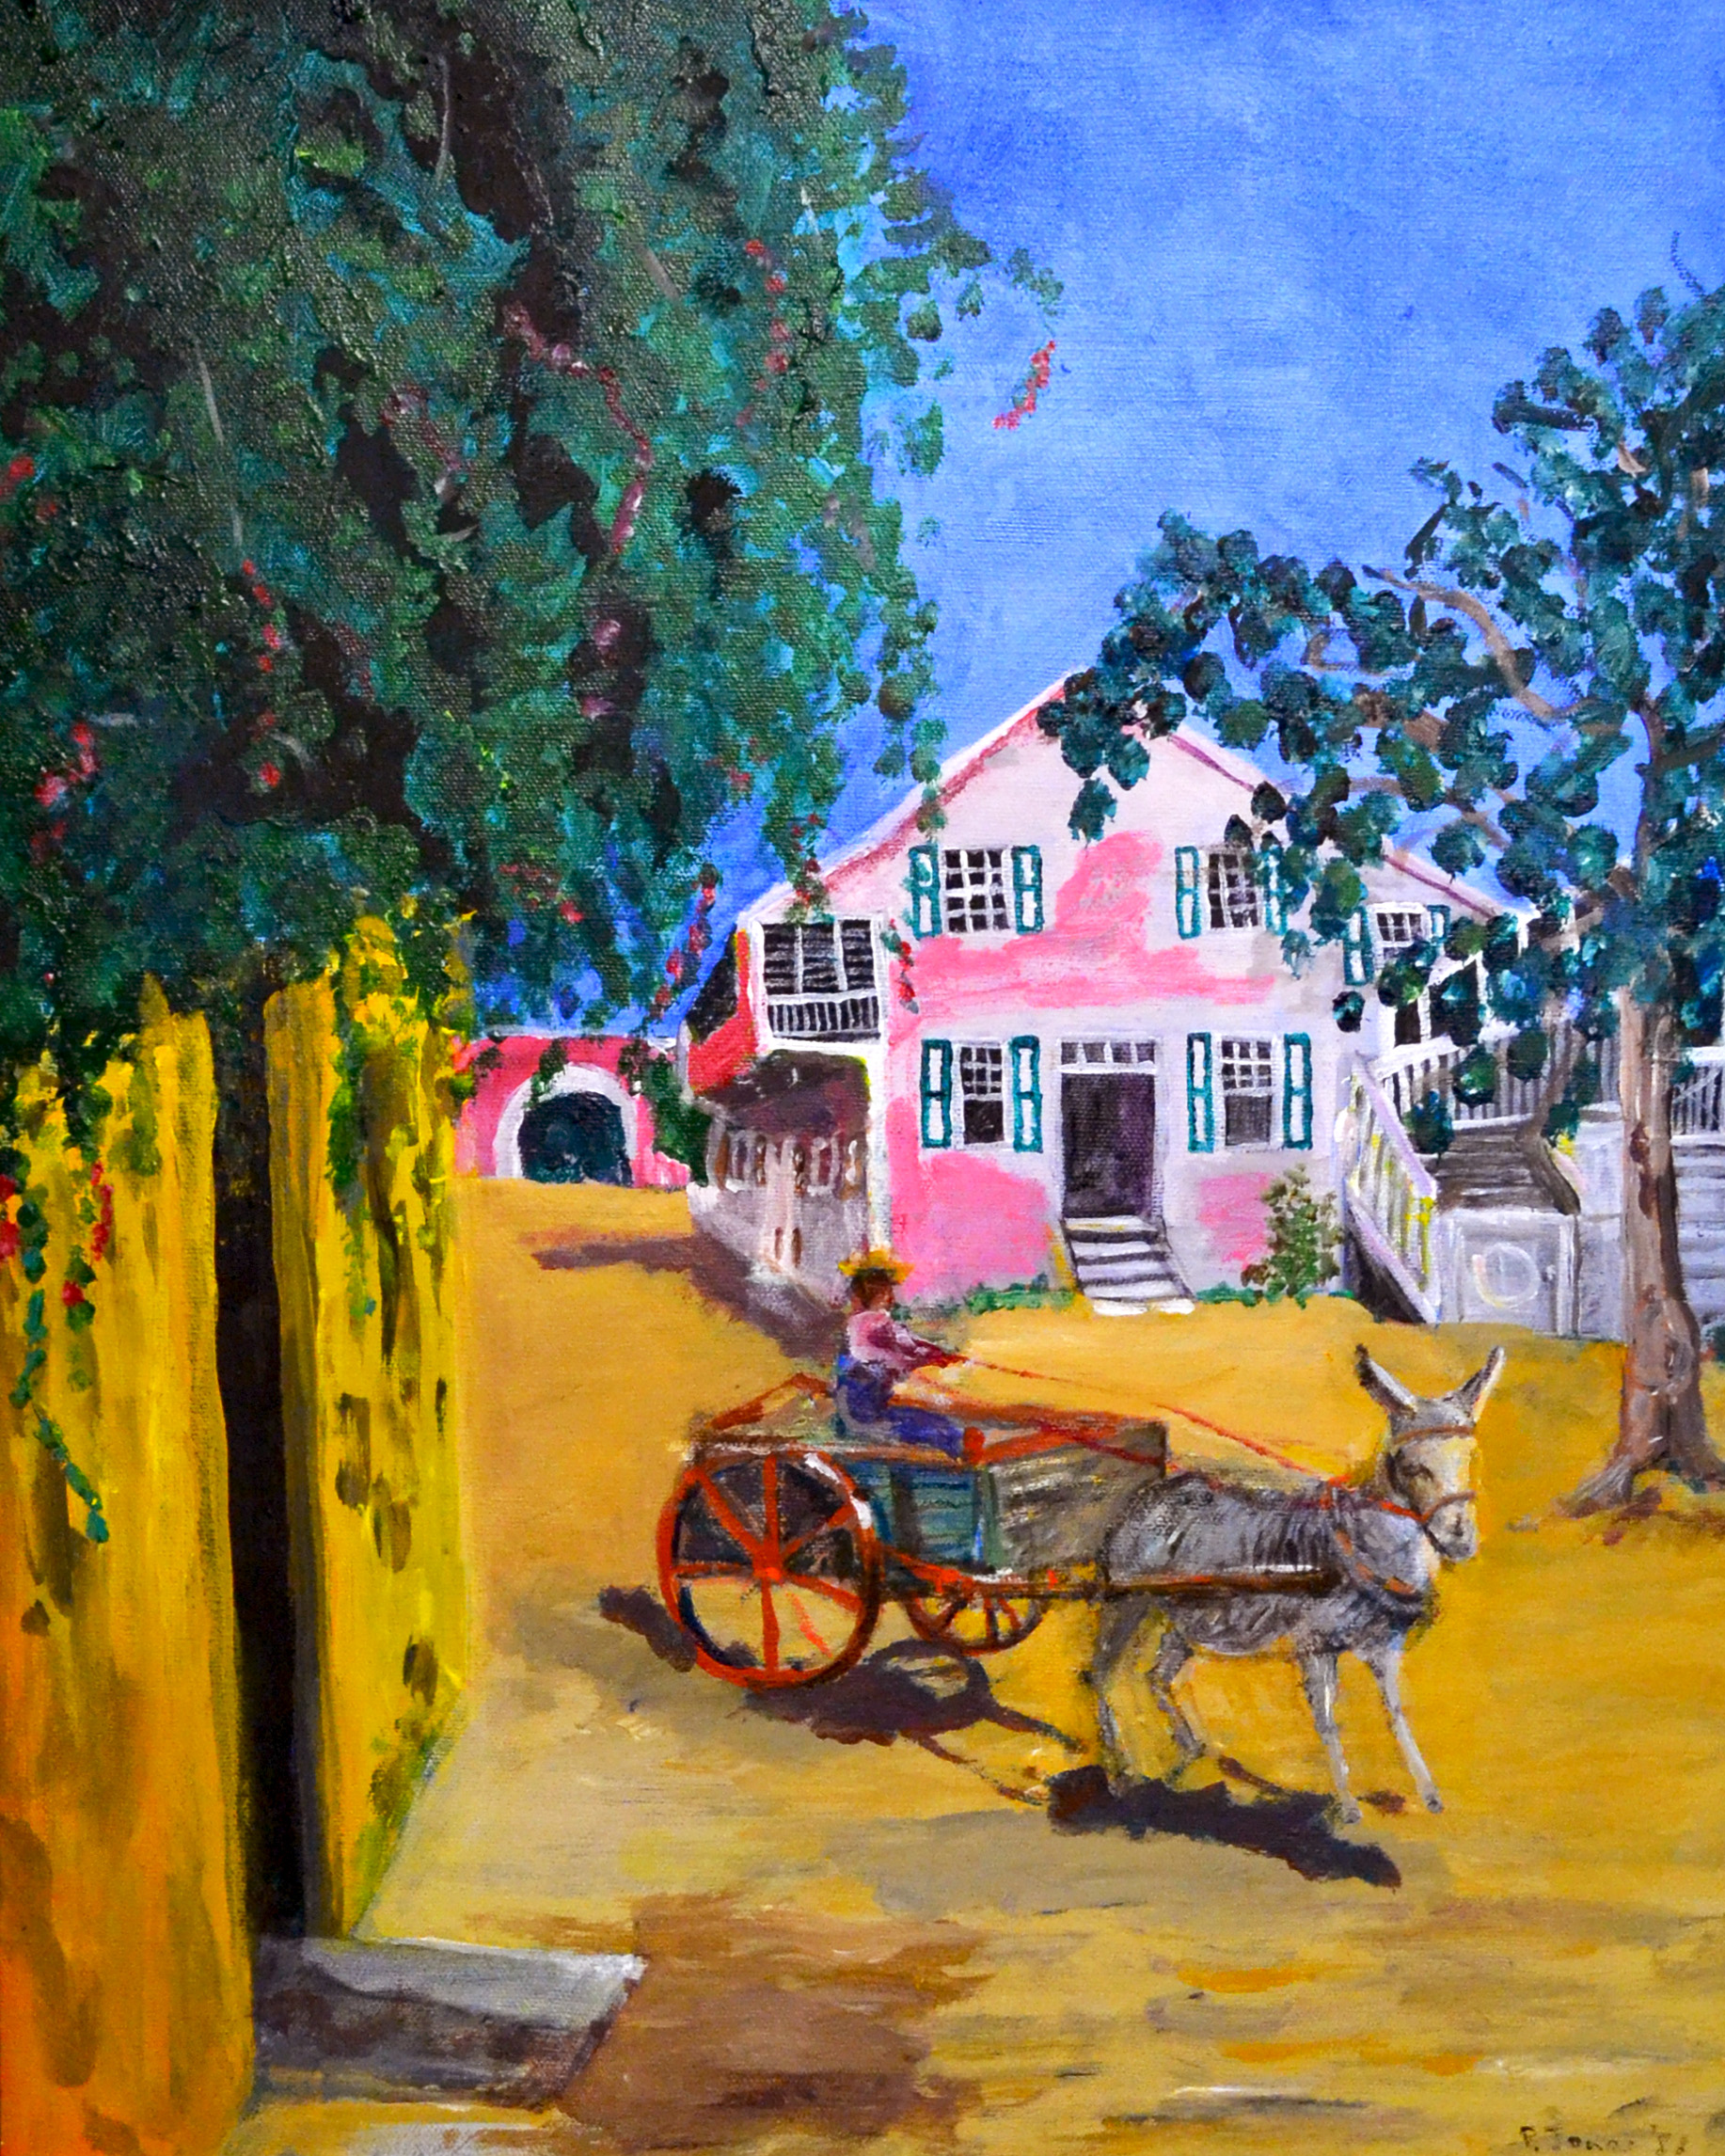 """""""Balcony House - Market Street"""" (1981), Peggy Jones, acrylic on canvas, 13 1/2 x 10 1/2. Collection of the artist. As seen in """"In Retrospect: The Whimsy of Peggy Jones"""" in the Project Space at the NAGB."""